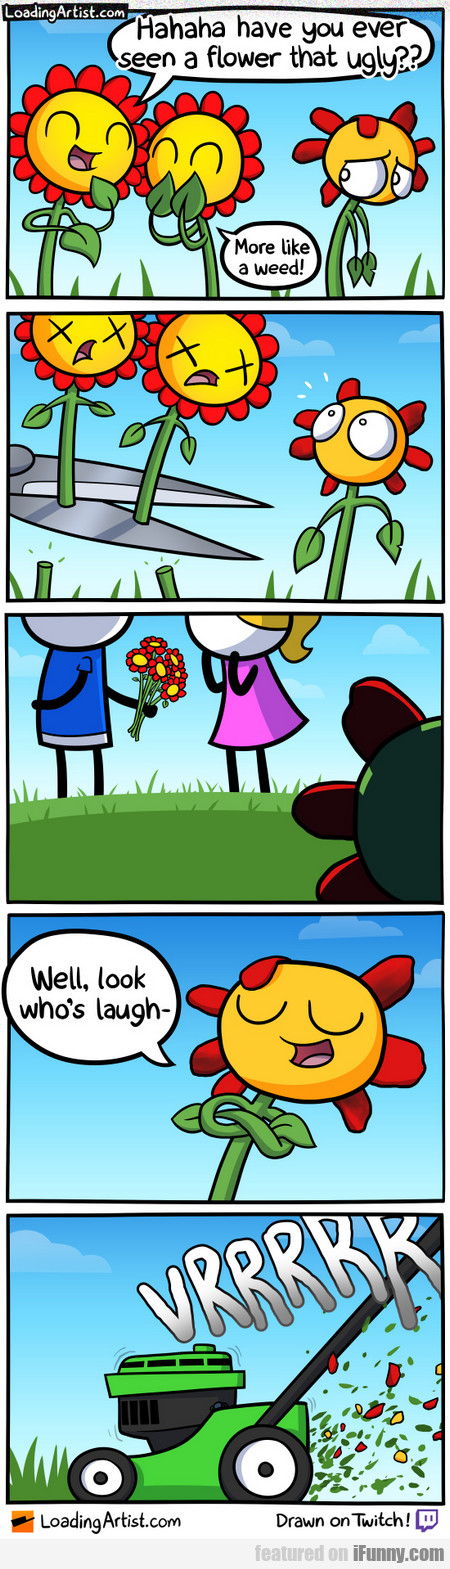 hahaha have you ever seean a flower that ugly??